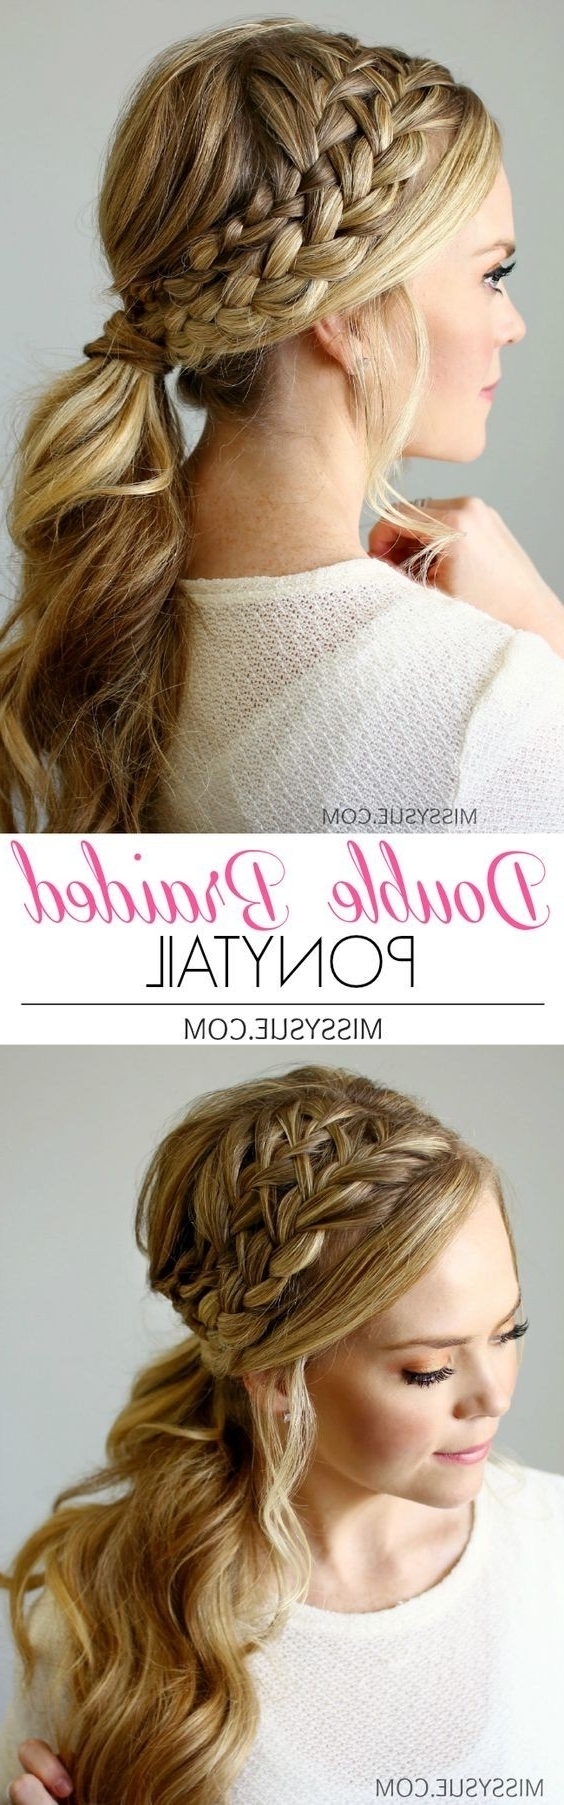 18 Cute Braided Ponytail Styles – Popular Haircuts For Well Known Pony Hairstyles With Wrap Around Braid For Short Hair (View 4 of 20)